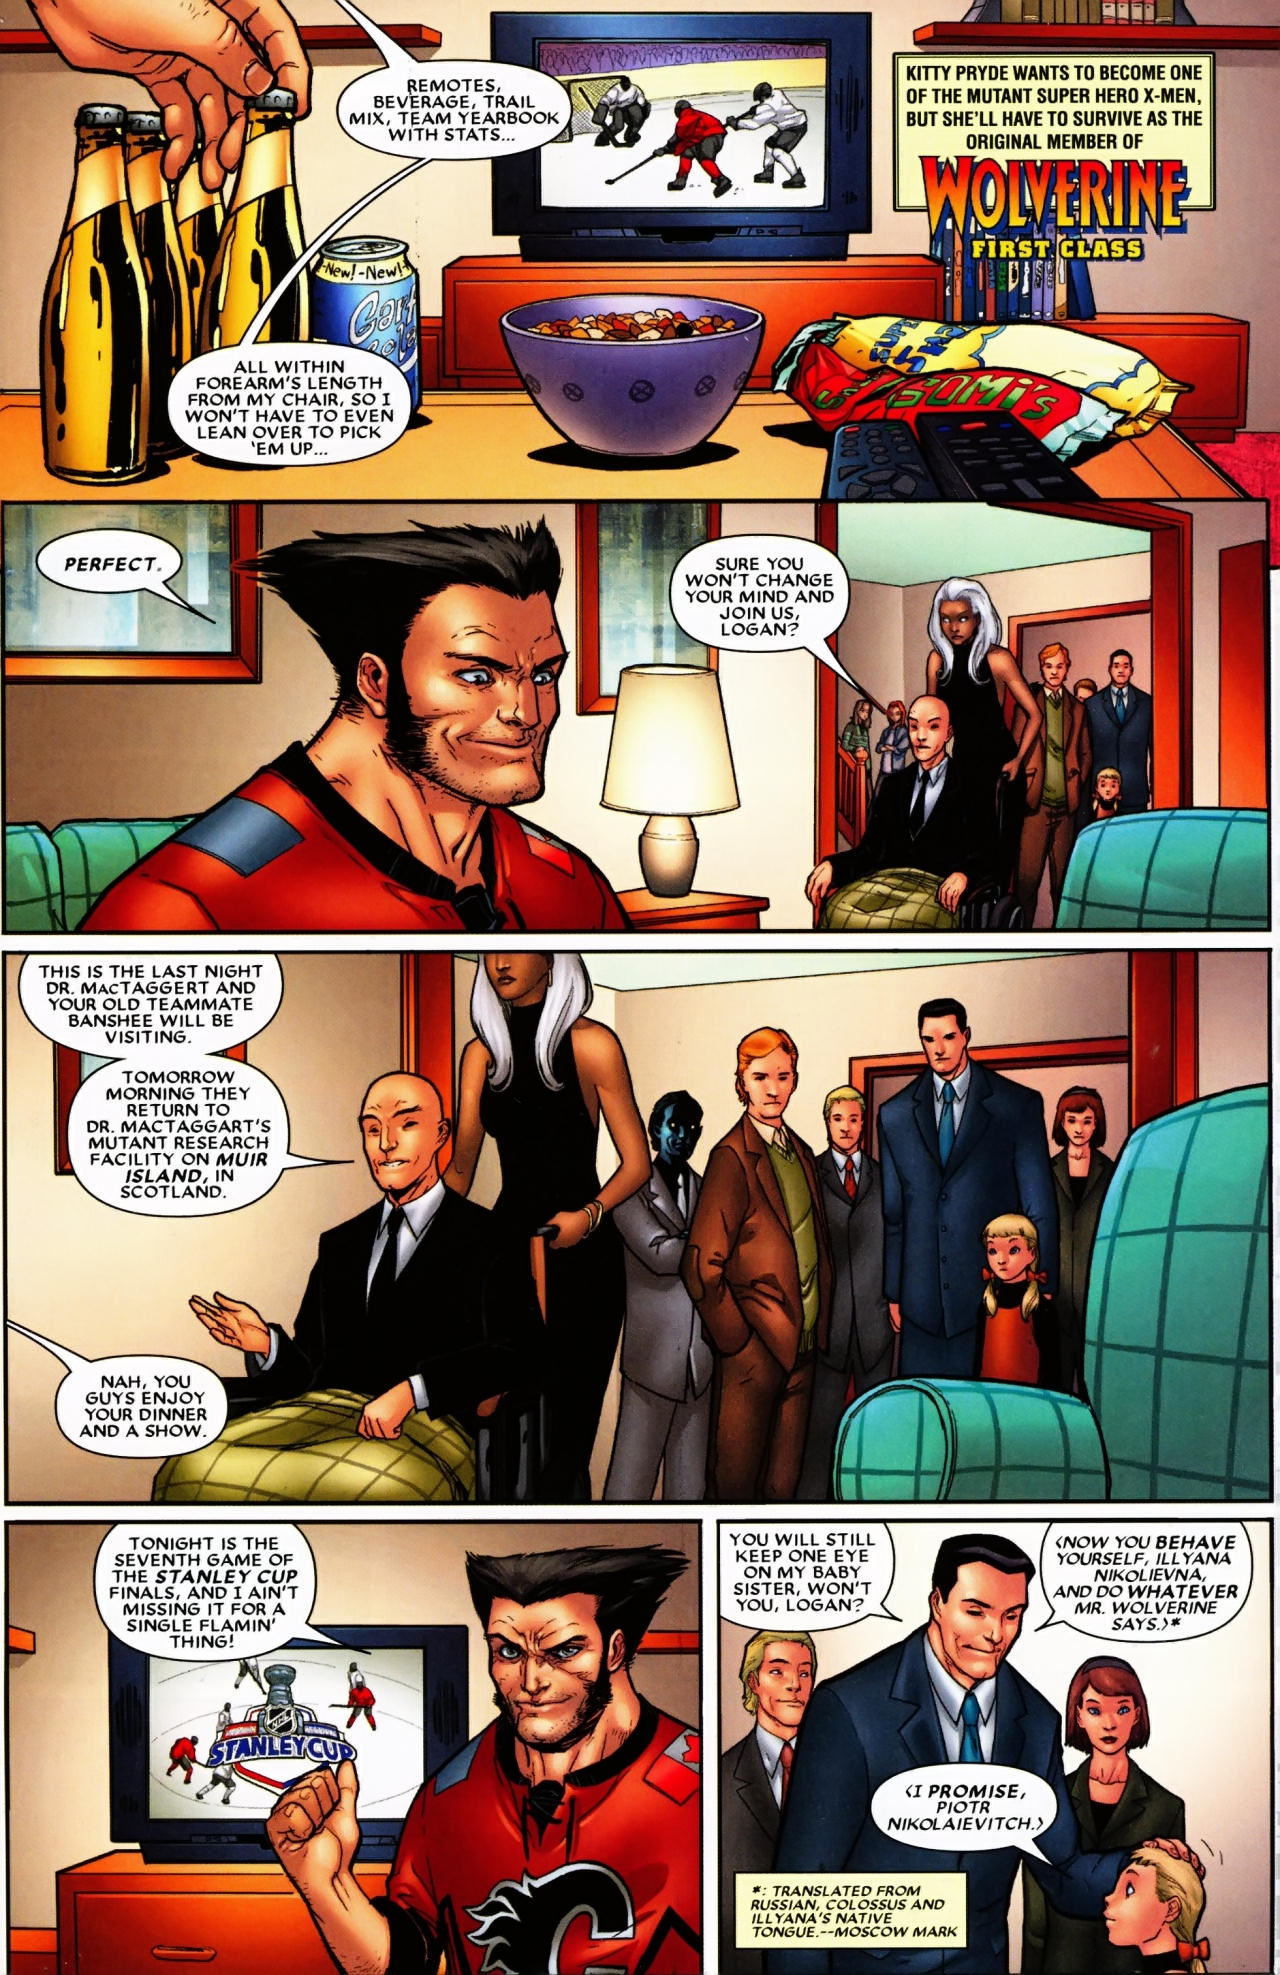 Read online Wolverine: First Class comic -  Issue #6 - 2